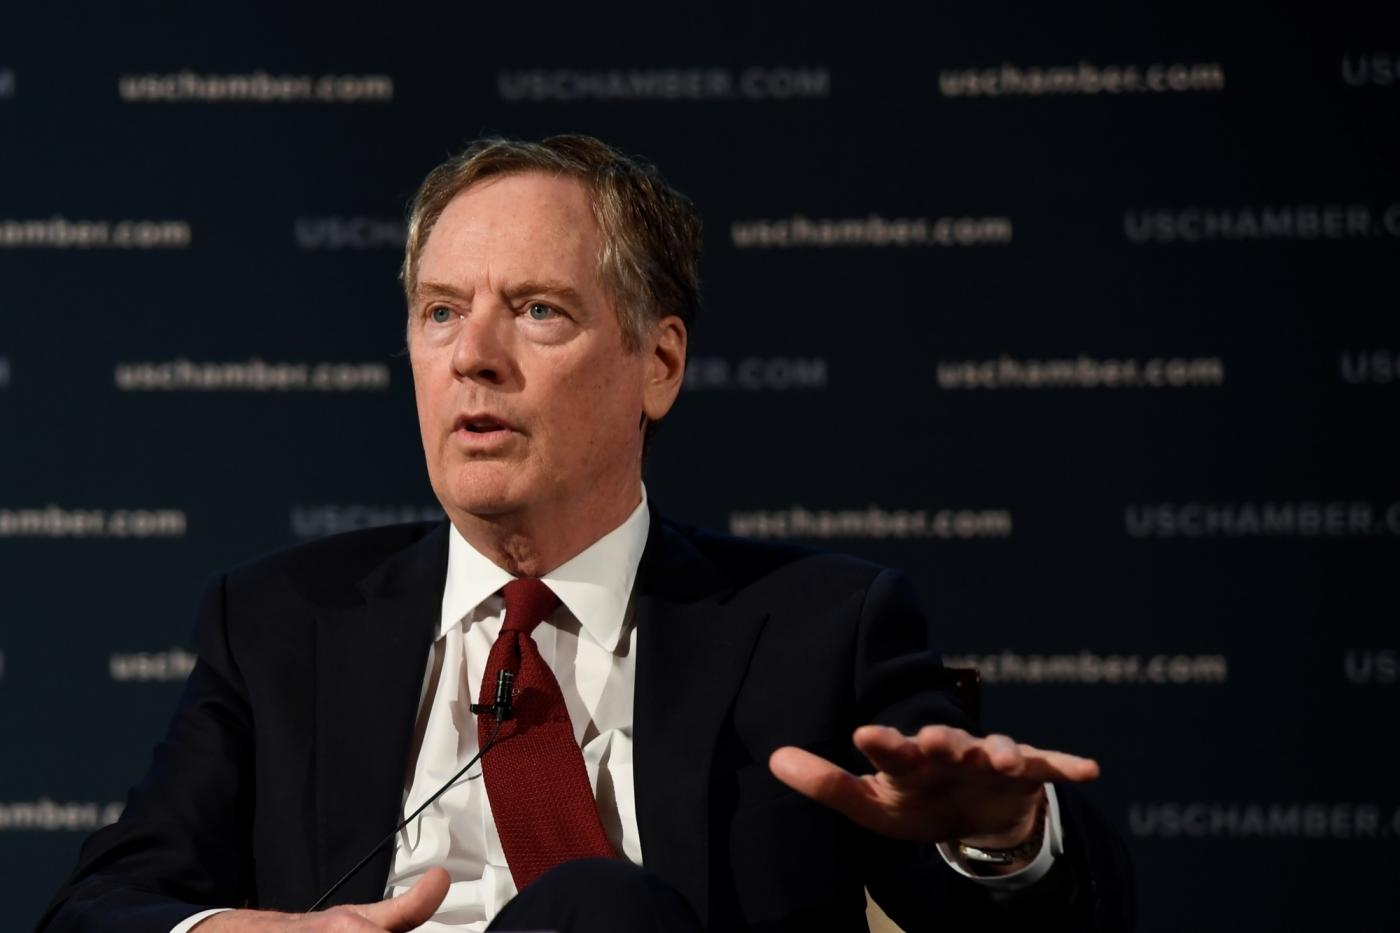 WASHINGTON D.C., May 3, 2018 (Xinhua) -- U.S. Trade Representative (USTR) Robert Lighthizer speaks at an event hosted by the U.S. Chamber of Commerce in Washington D.C., the United States, on May 1, 2018. Lighthizer said on Tuesday that he hoped to reach a deal to overhaul the North American Free Trade Agreement (NAFTA) in mid-May, which could buy more time for the current Congress to approve the deal. (Xinhua/Yang Chenglin/IANS) by .